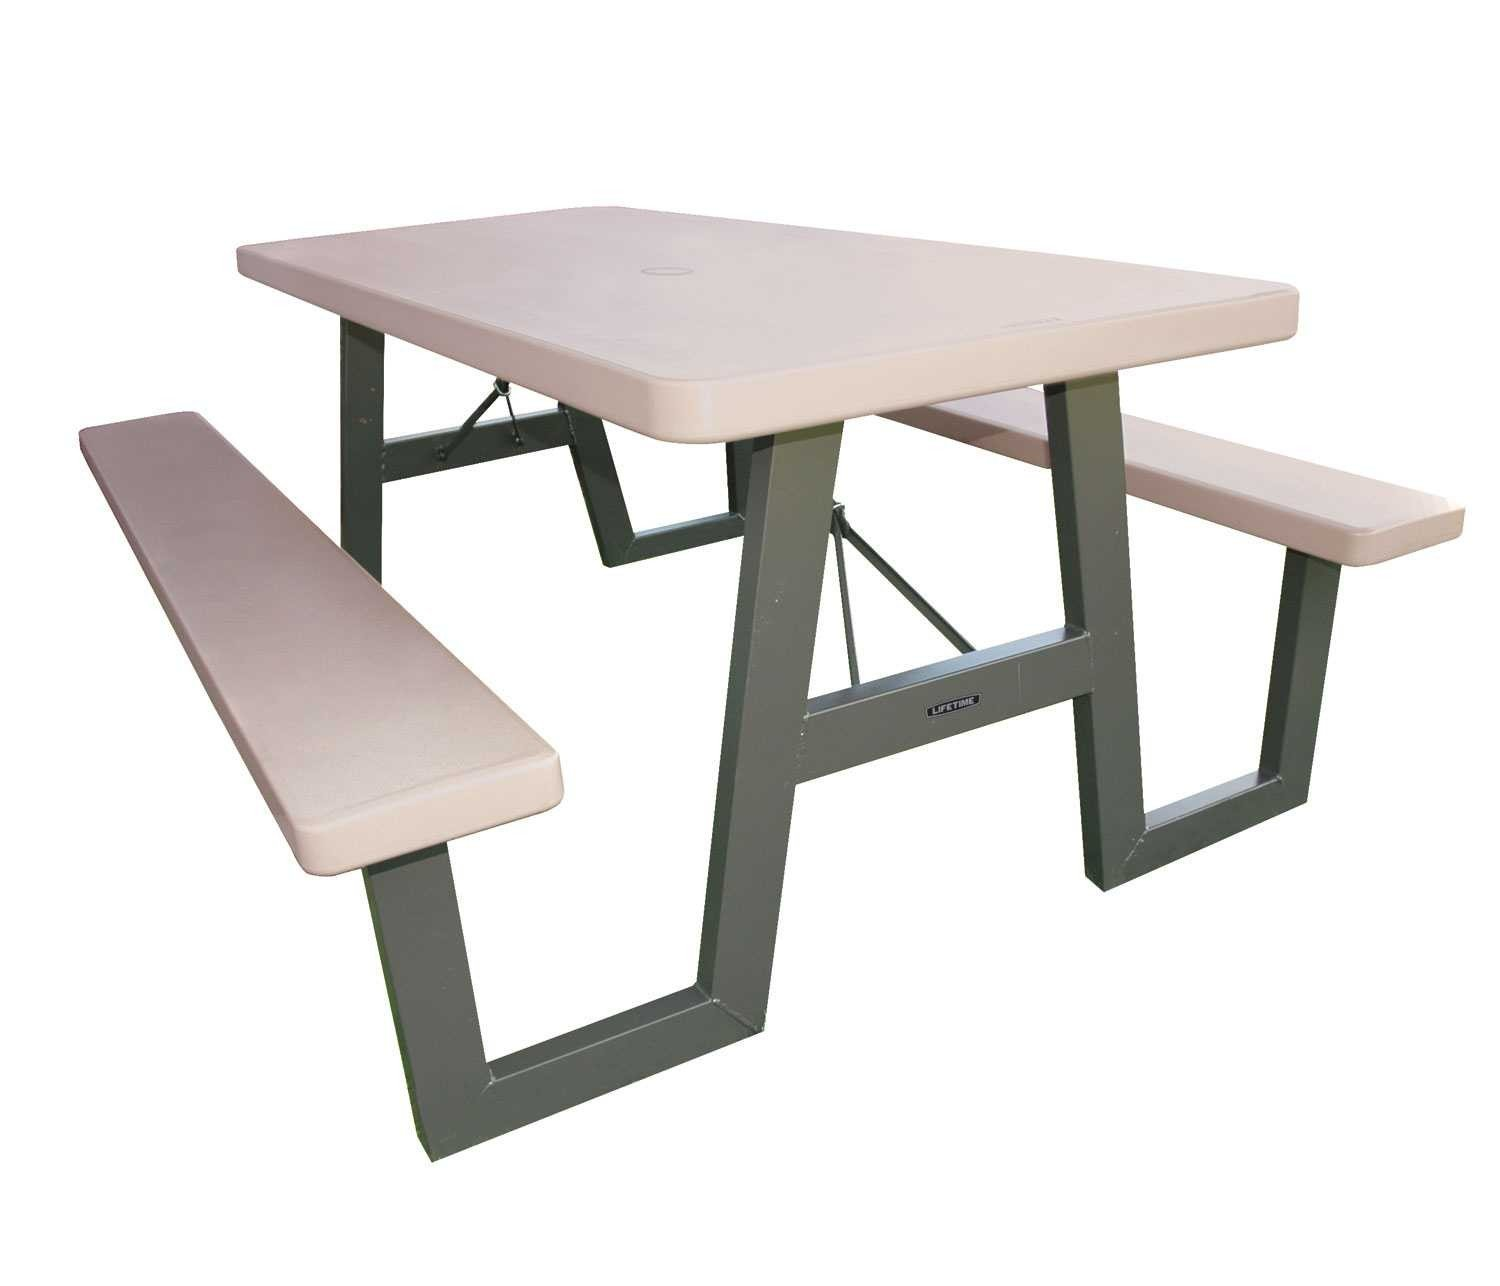 Picnic table images clipart